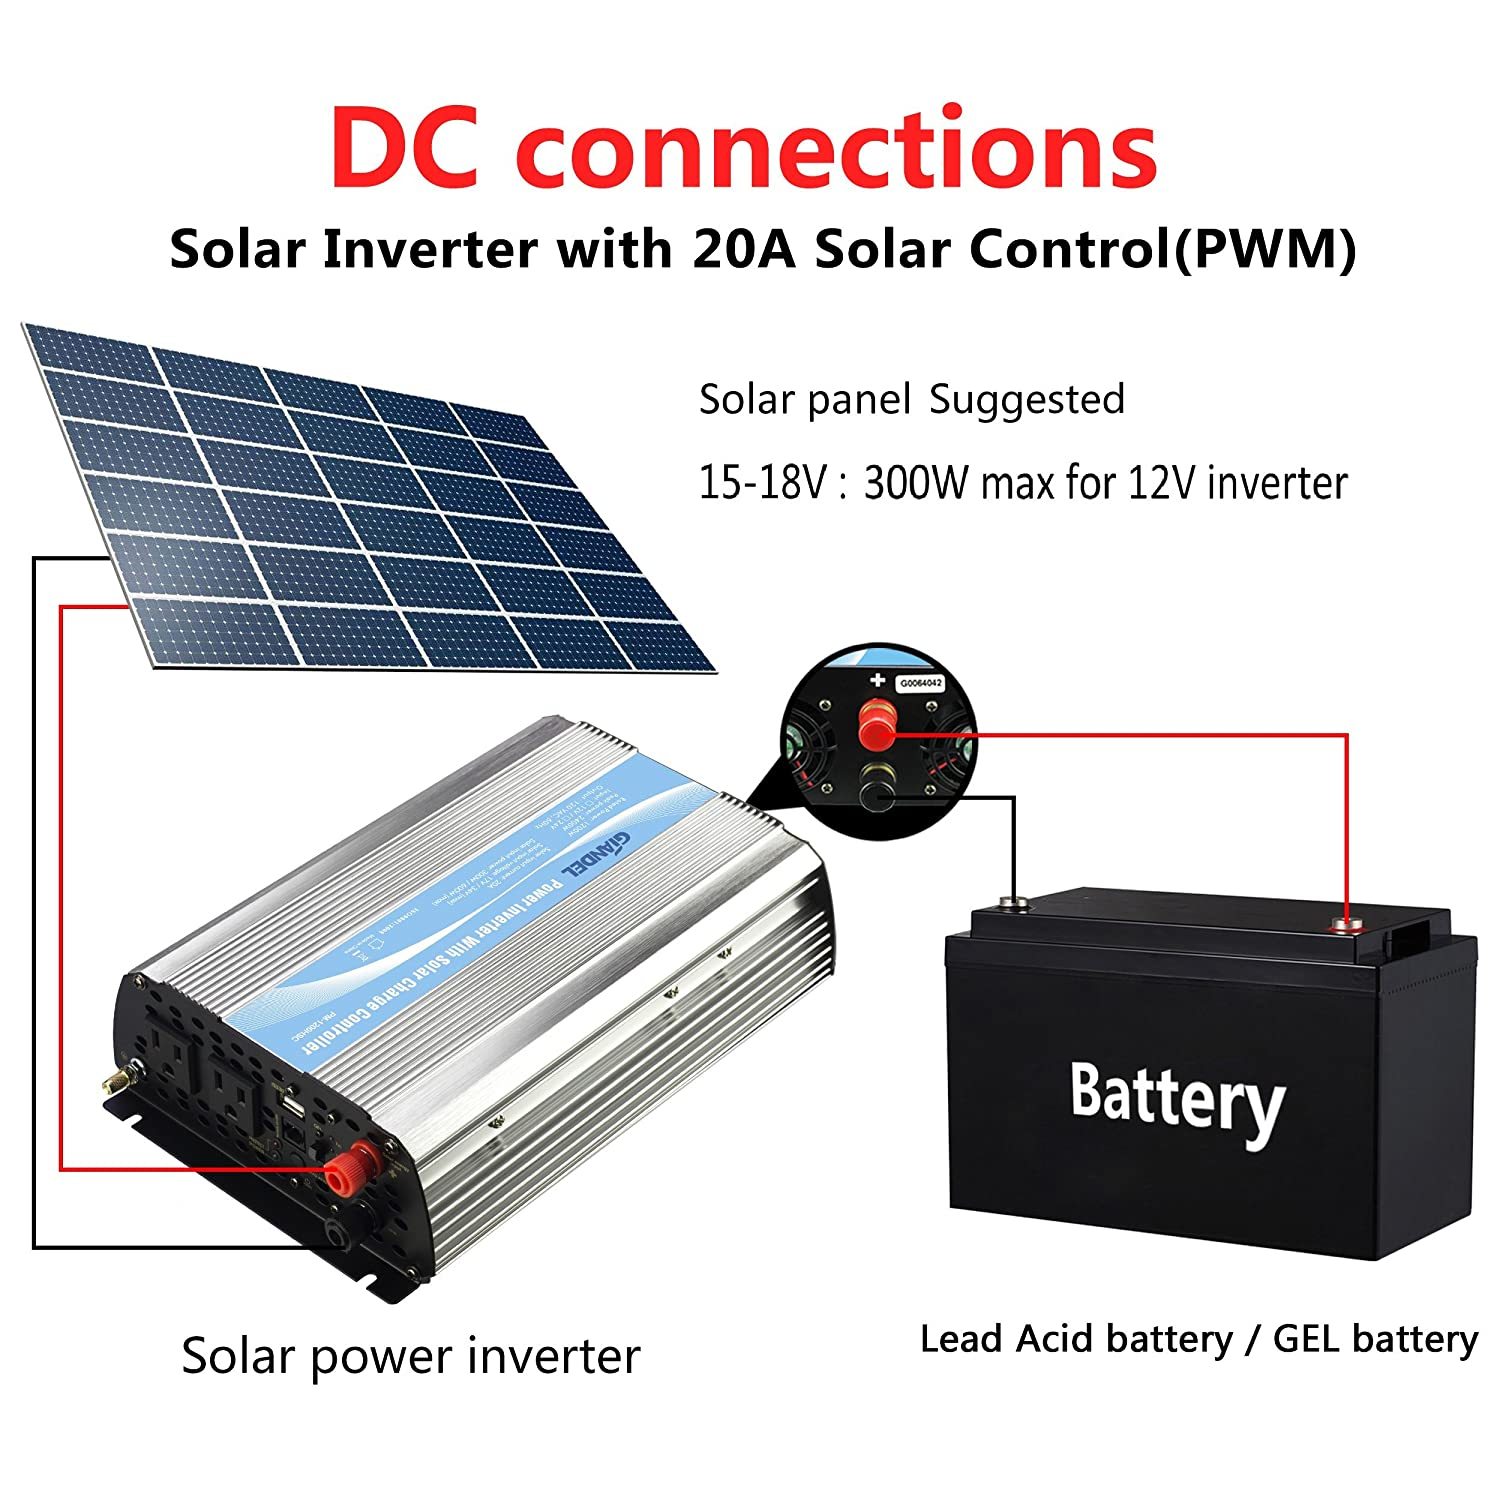 Giandel 1200watt Power Inverter 24v Dc To 110v 120vac Simple Mppt Solar Panel Charge Controllersmpptfrontendpng With Controller And Remote Dual Ac Outlets Usb Port Garden Outdoor